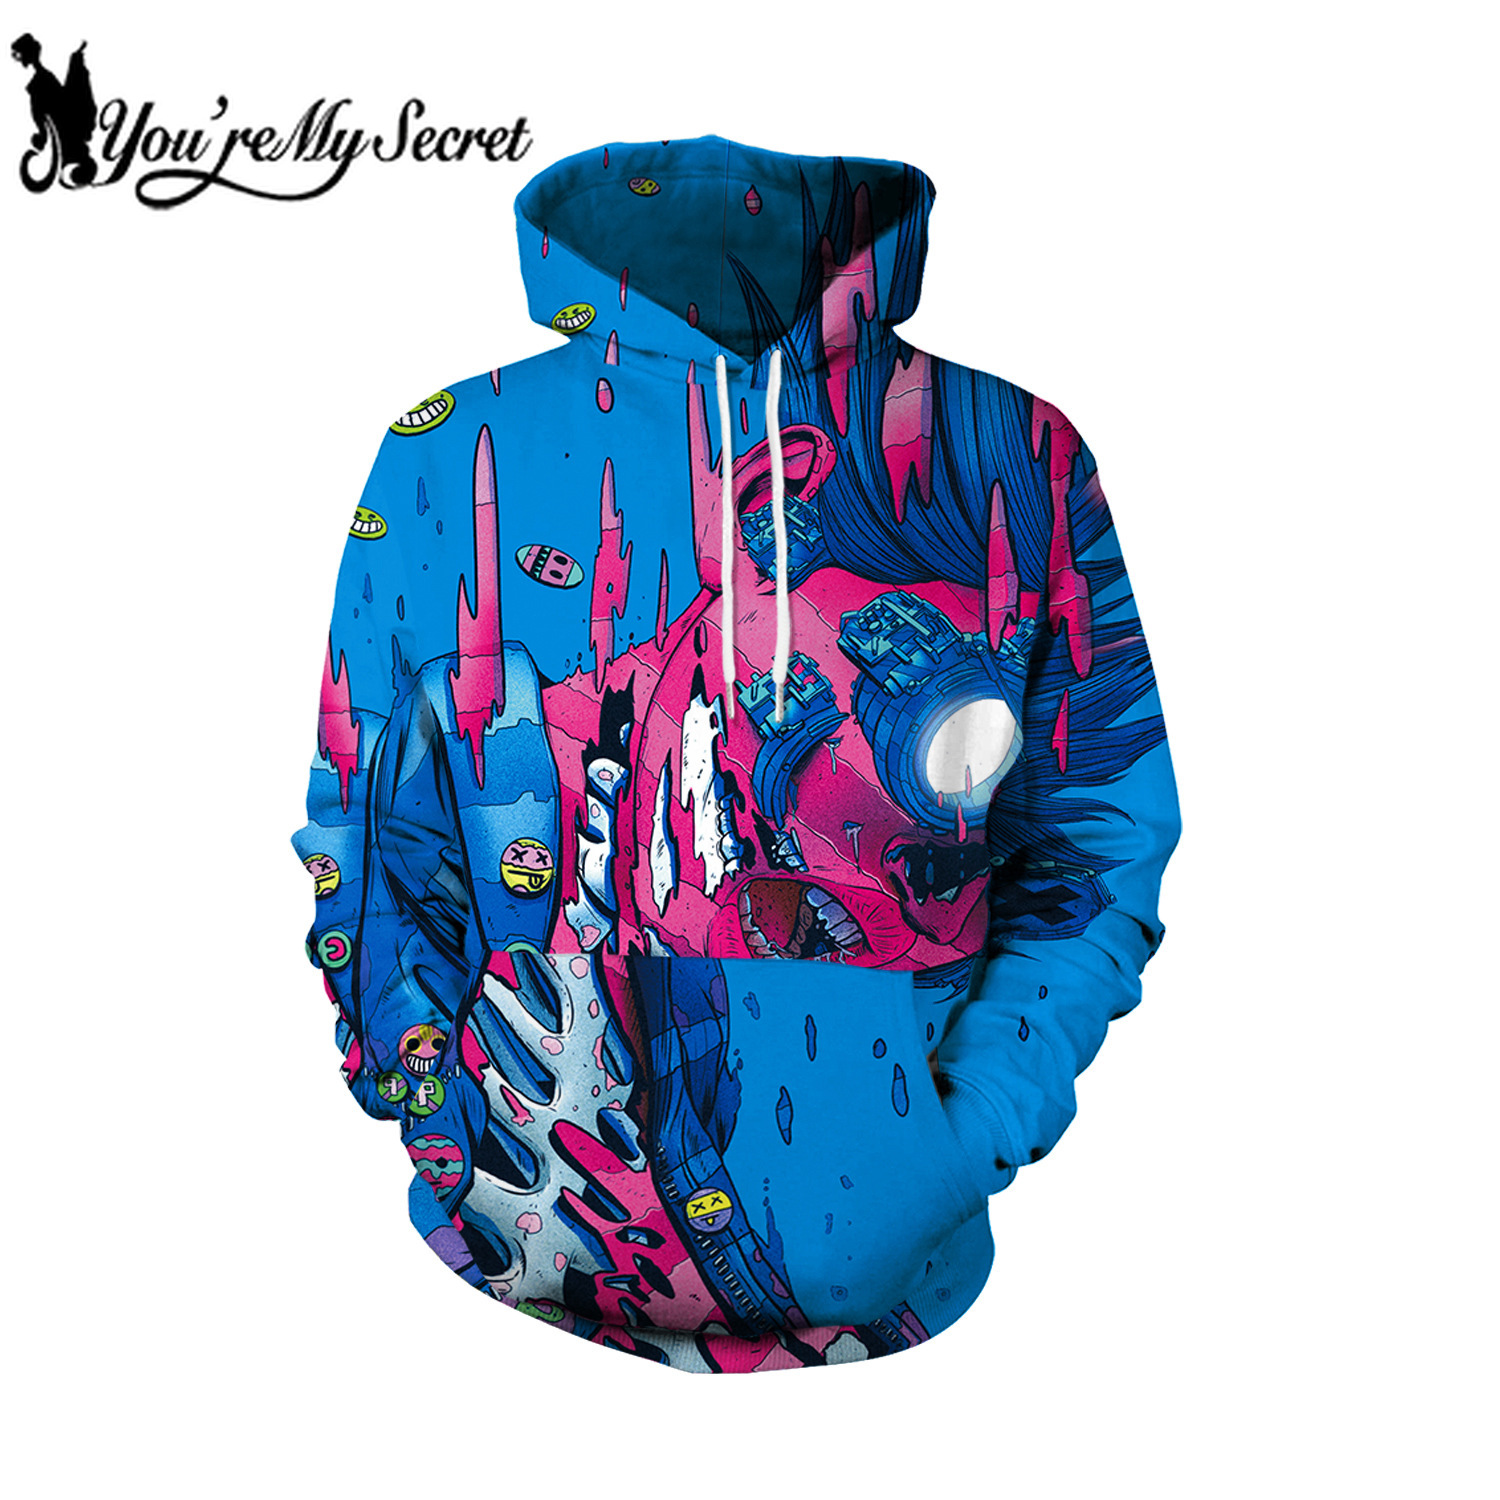 [You're My Secret] 2019 Steetwear Scrawl Deep See Cartoon Unisex Hooded Hoodie Fashion Design for Women Sweatshirt with Hood